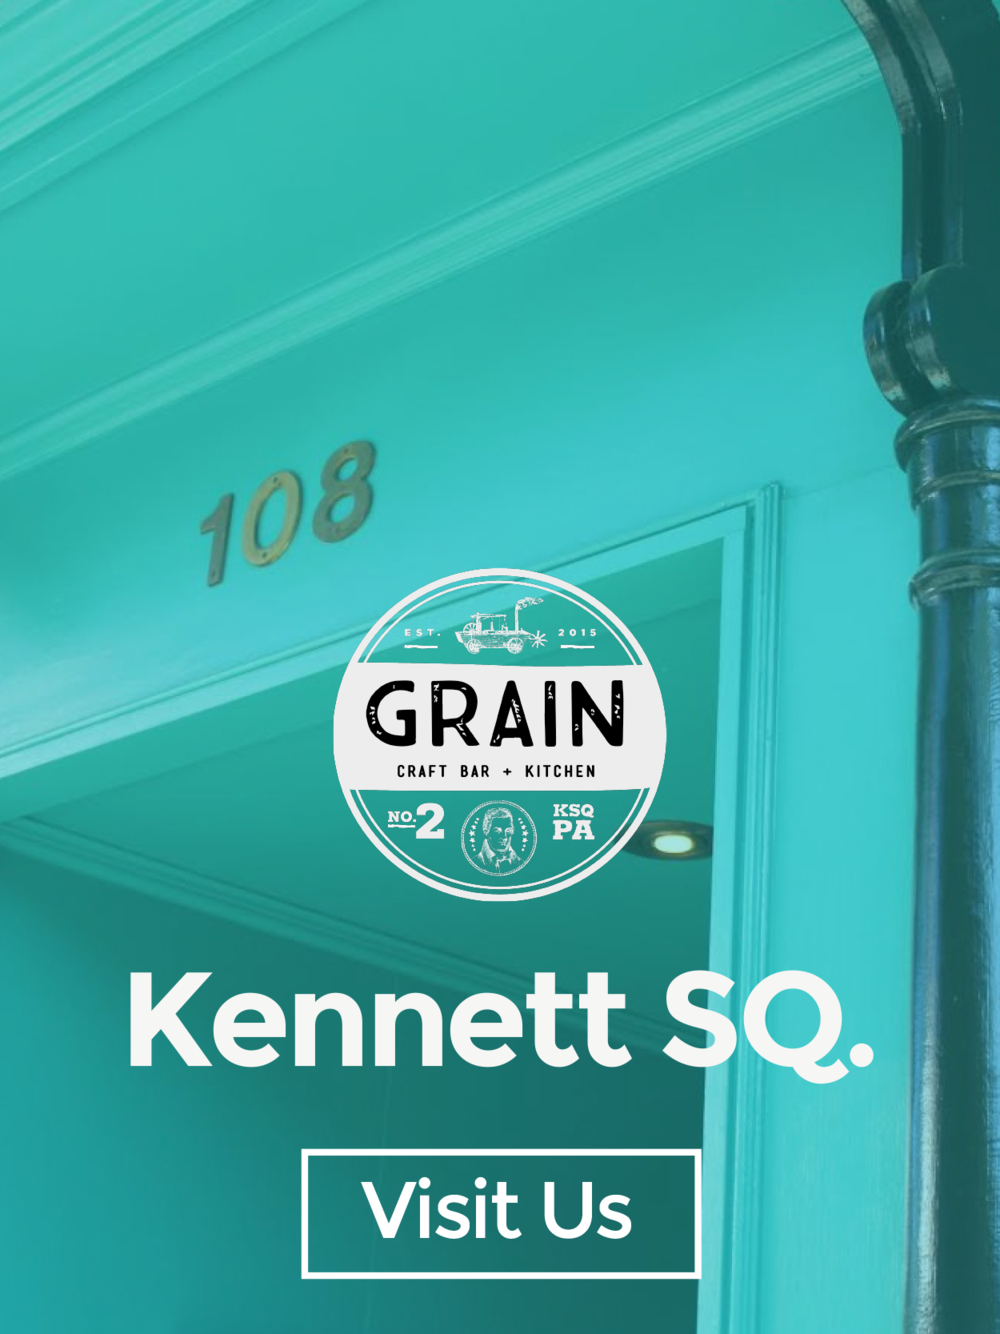 Grain Kennett Square PA